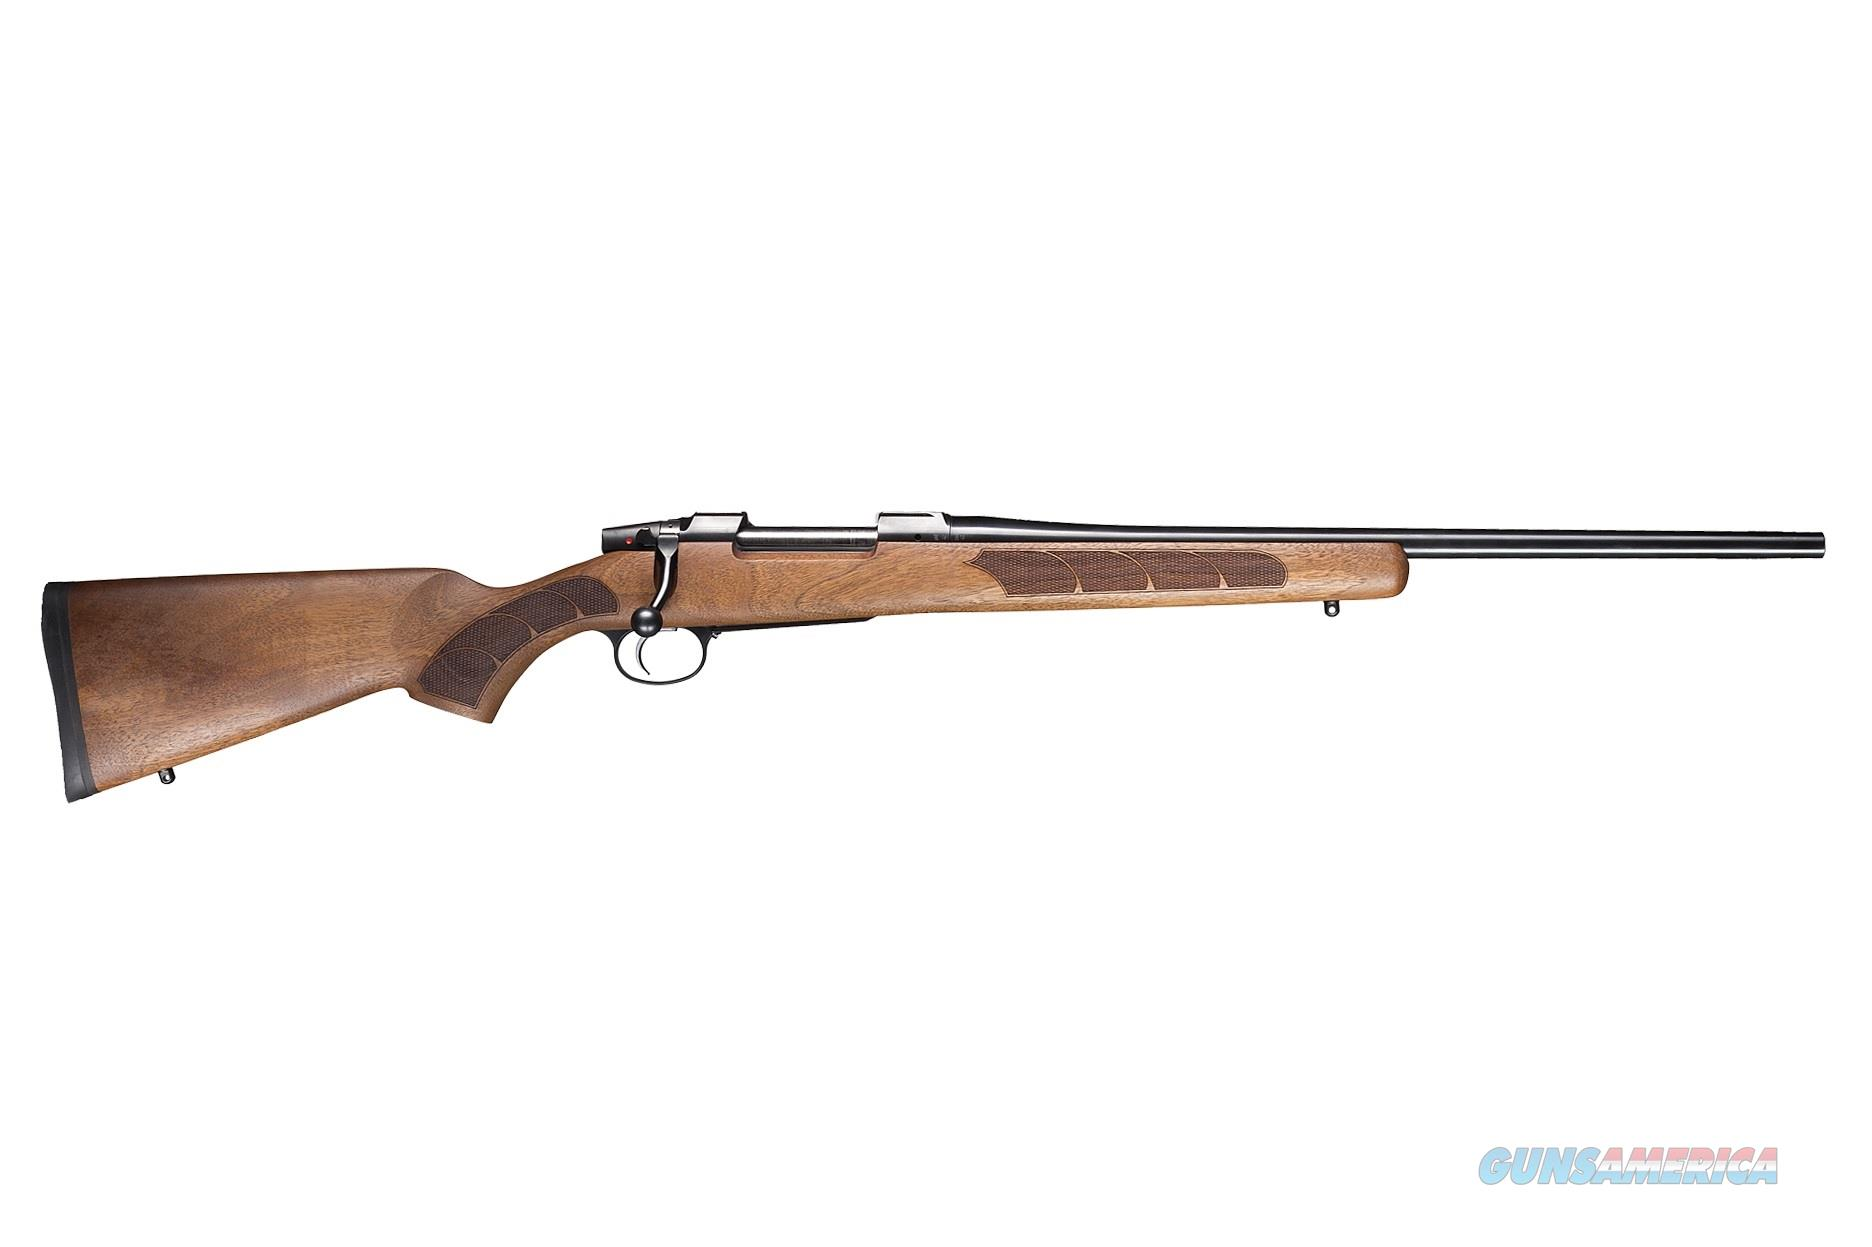 "CZ-USA CZ 557 Sporter .308 Win Walnut 20.5"" 04805   Guns > Rifles > CZ Rifles"